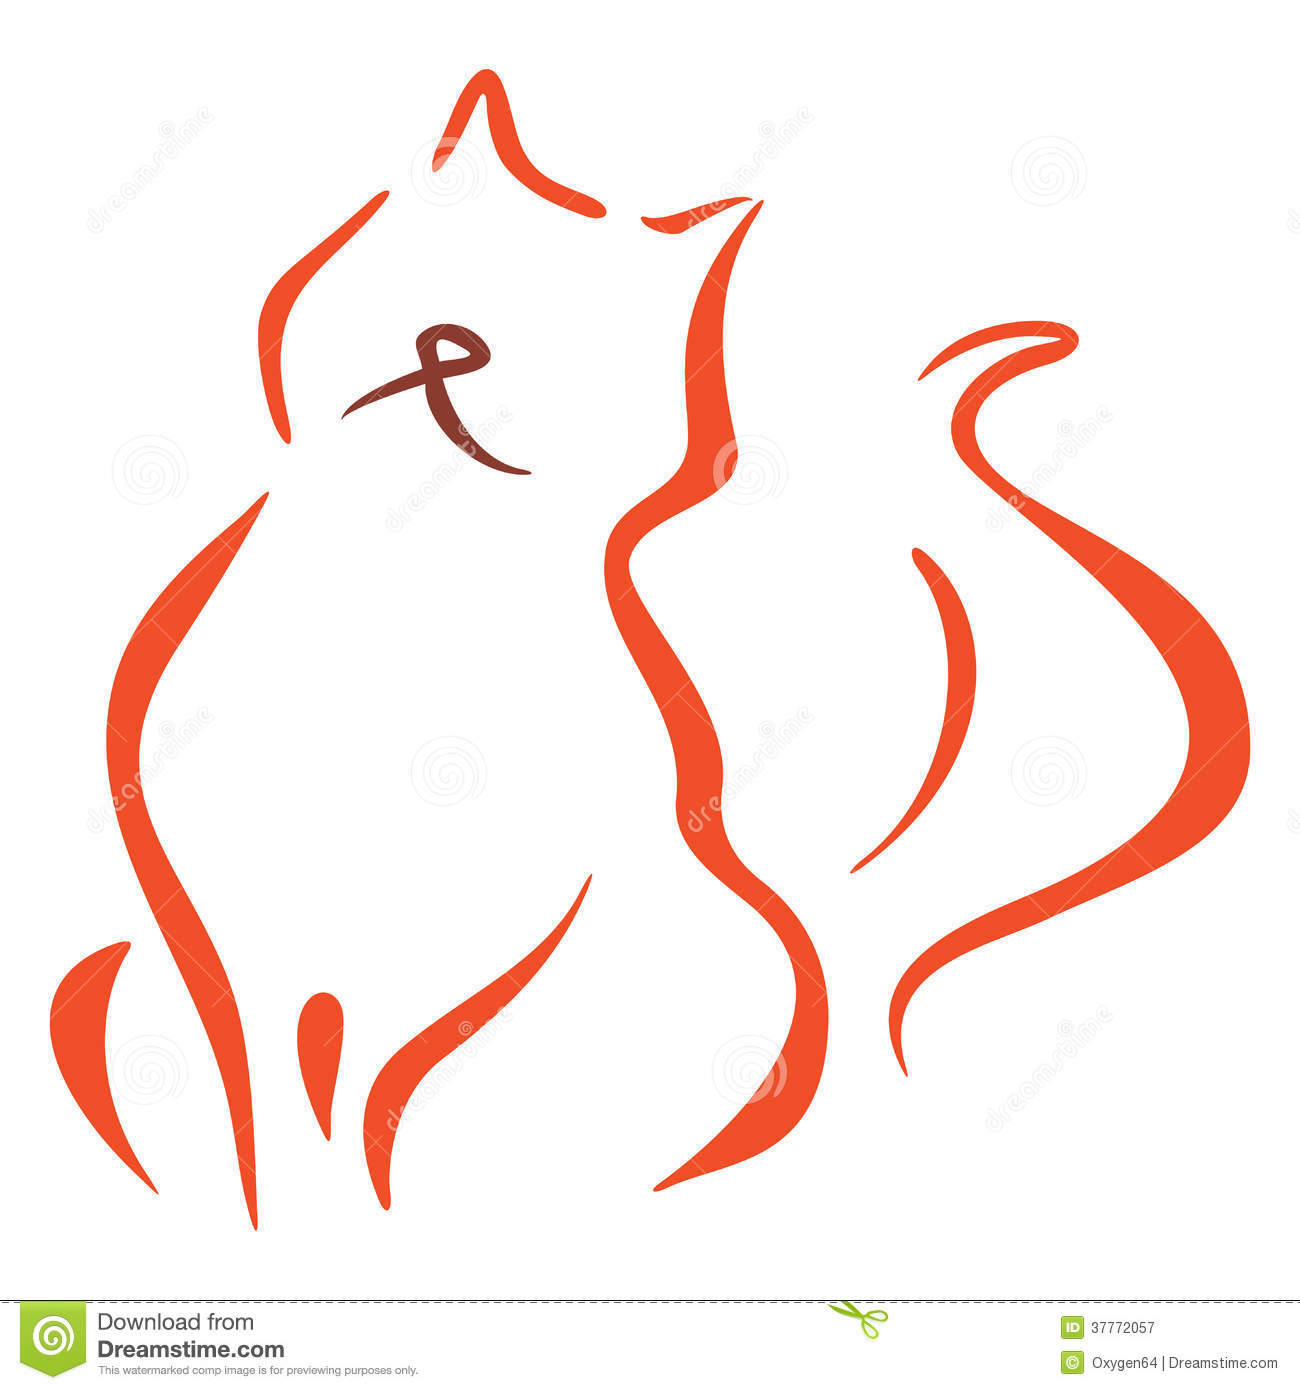 Cat Symbol Royalty Free Stock Photography - Image: 37772057